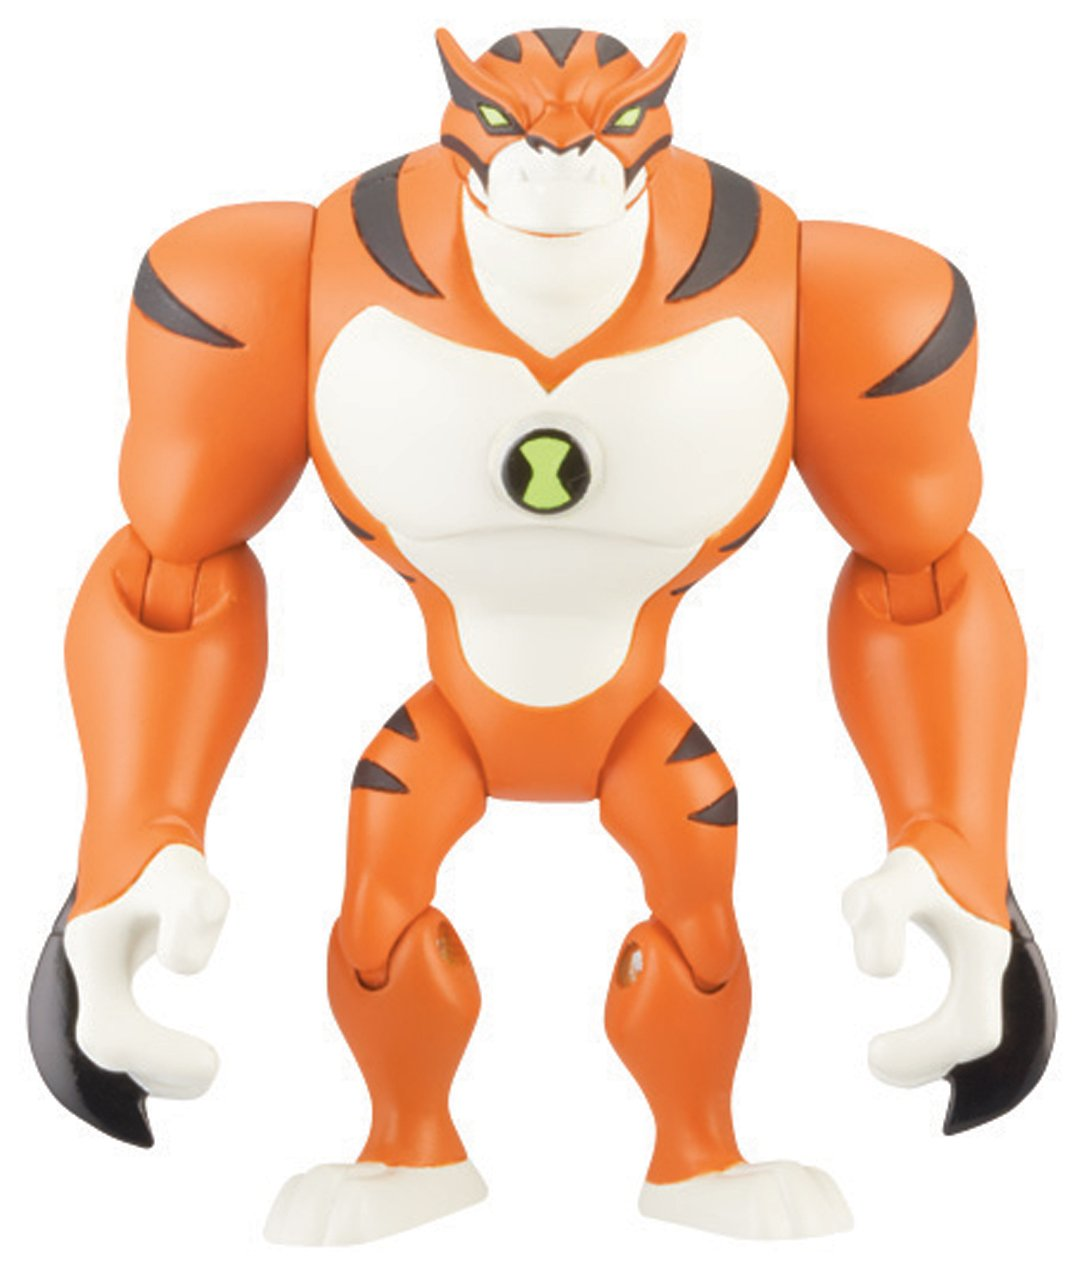 Amazoncom Ben 10 Rath 4 Articulated Alien Figure Toys  Games